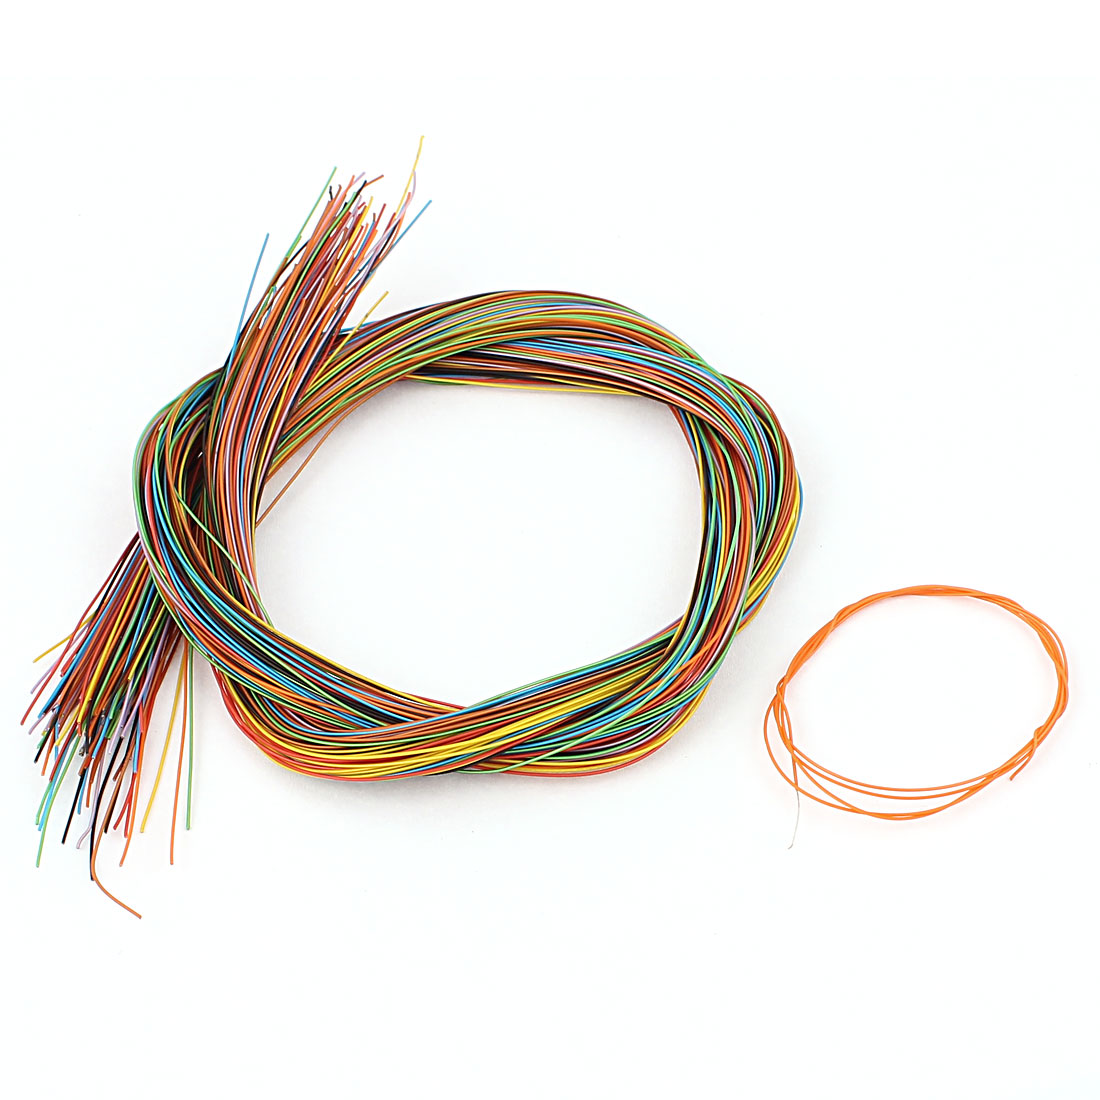 50cm 47G Female to Female Connector Jumper Wire Cable Test Line Multicolor